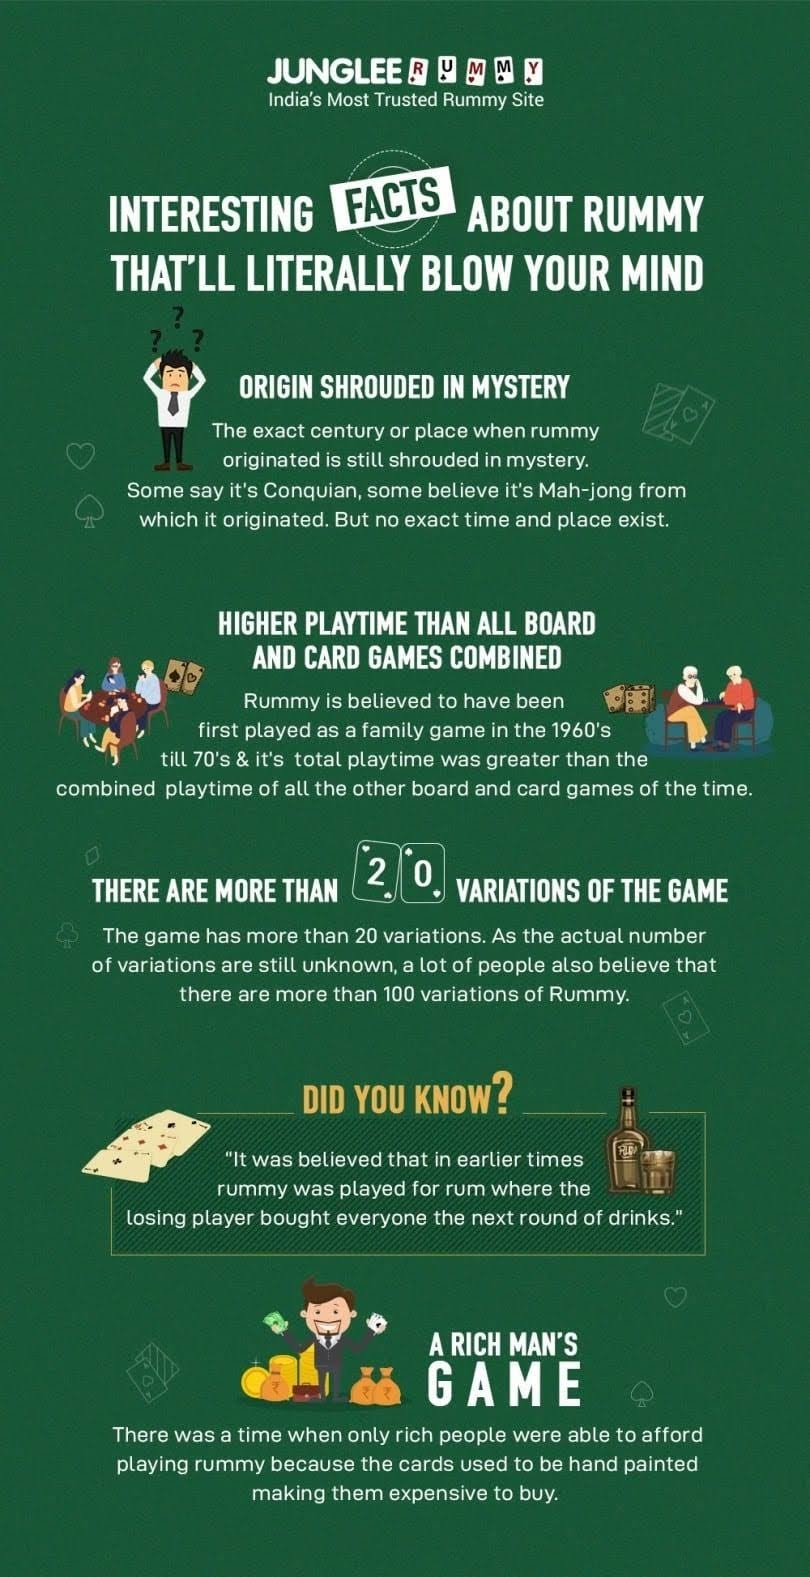 Interesting Facts About Rummy That'll Literally Blow Your Mind #infographic